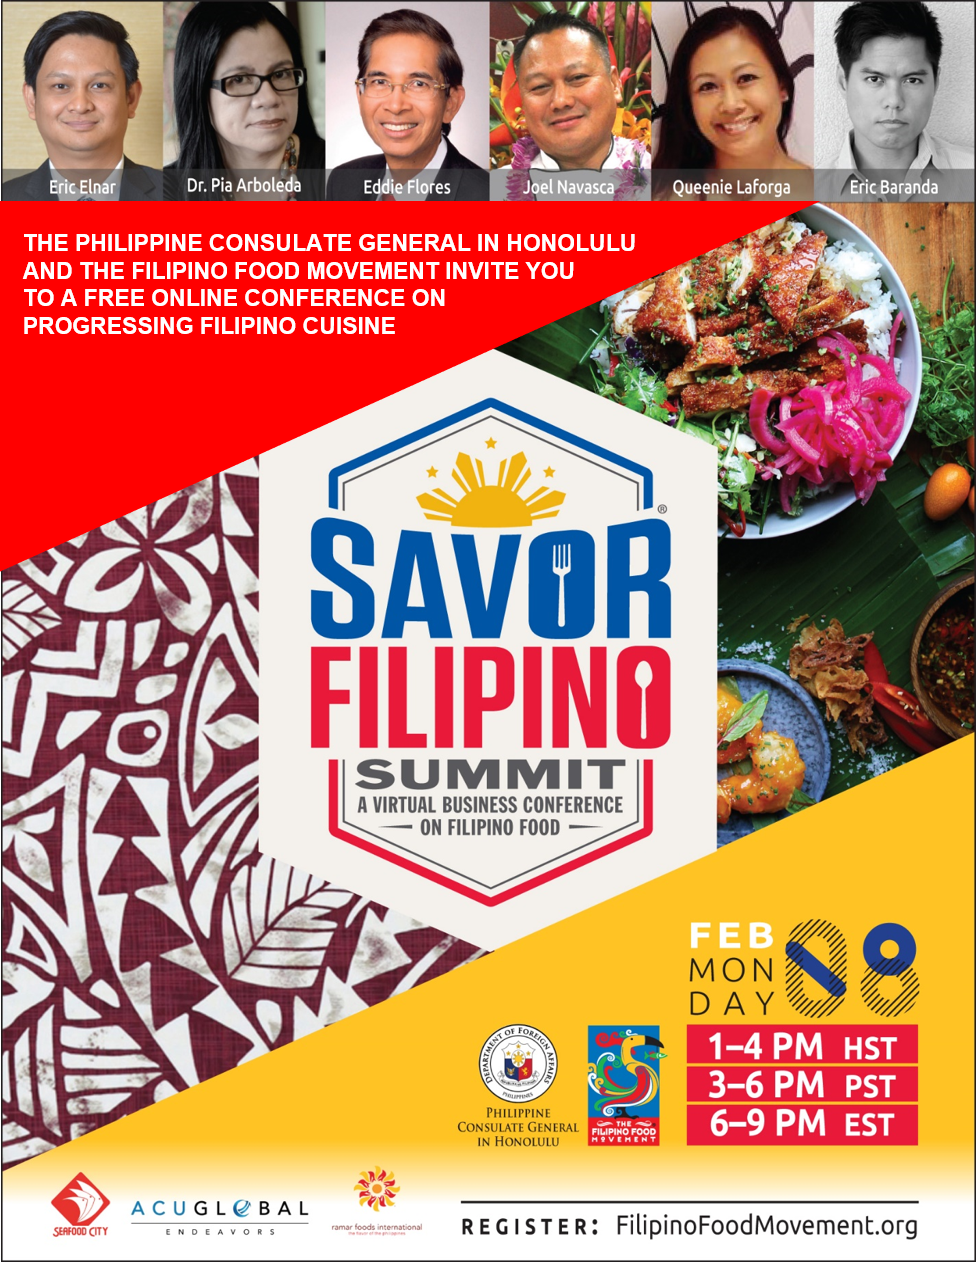 savor-filipino-summit